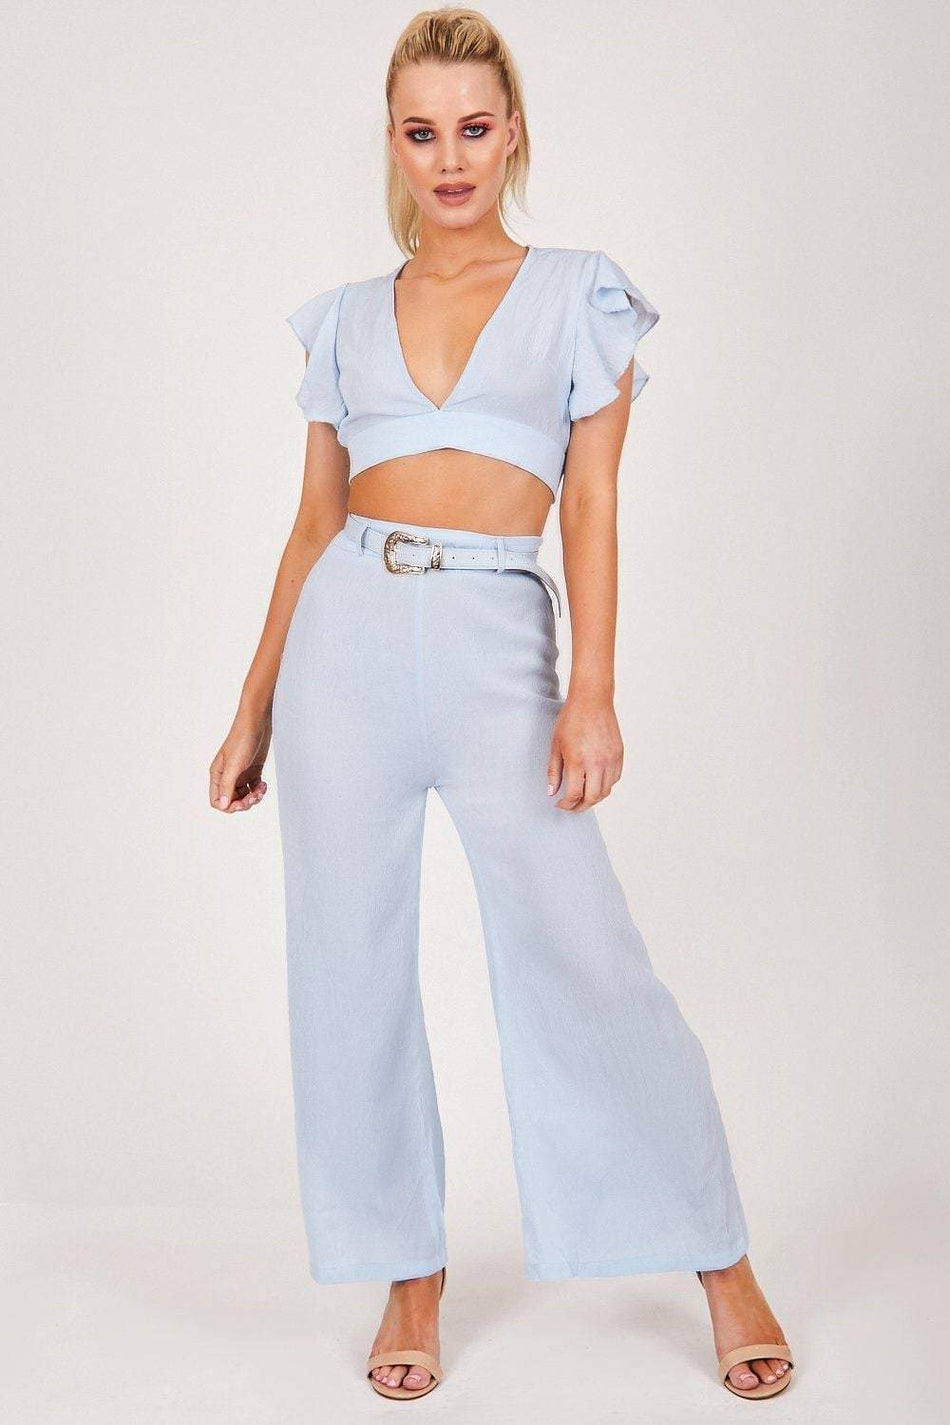 Blue Crepe Flare Co-ord - KATCH ME